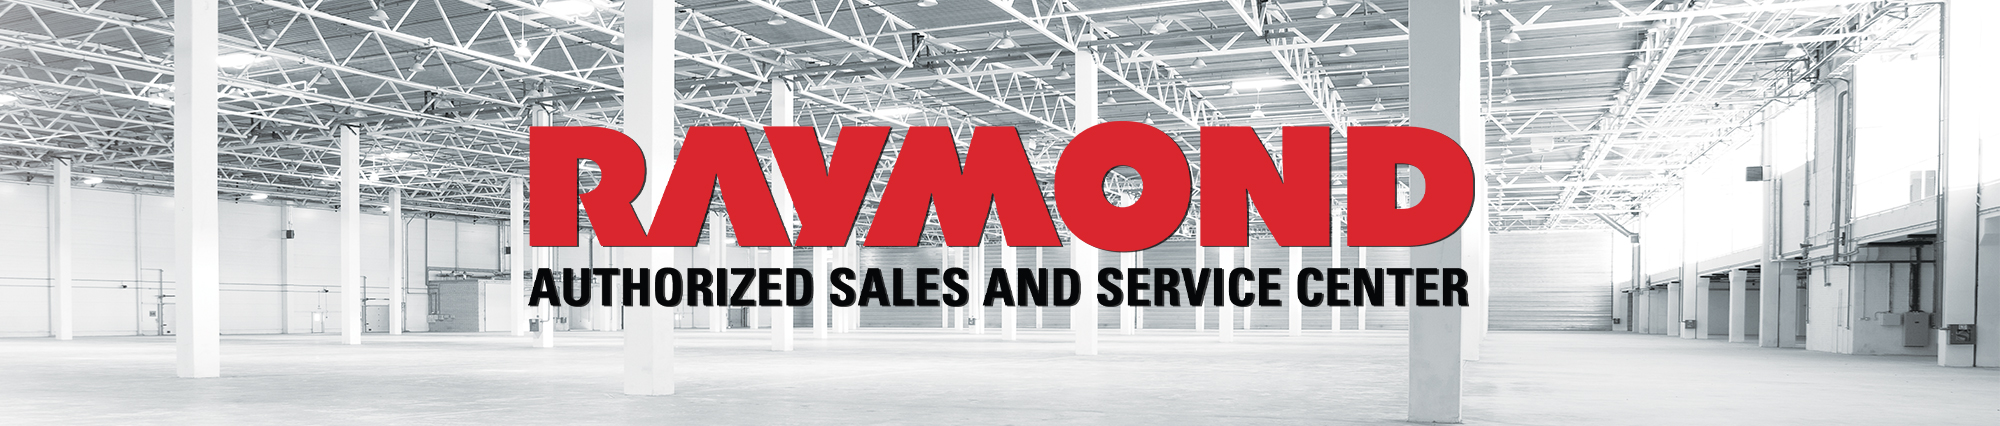 Pengate Handling Systems of Pittston, Pennsylvania: a Raymond Authorized Sales and Service Center